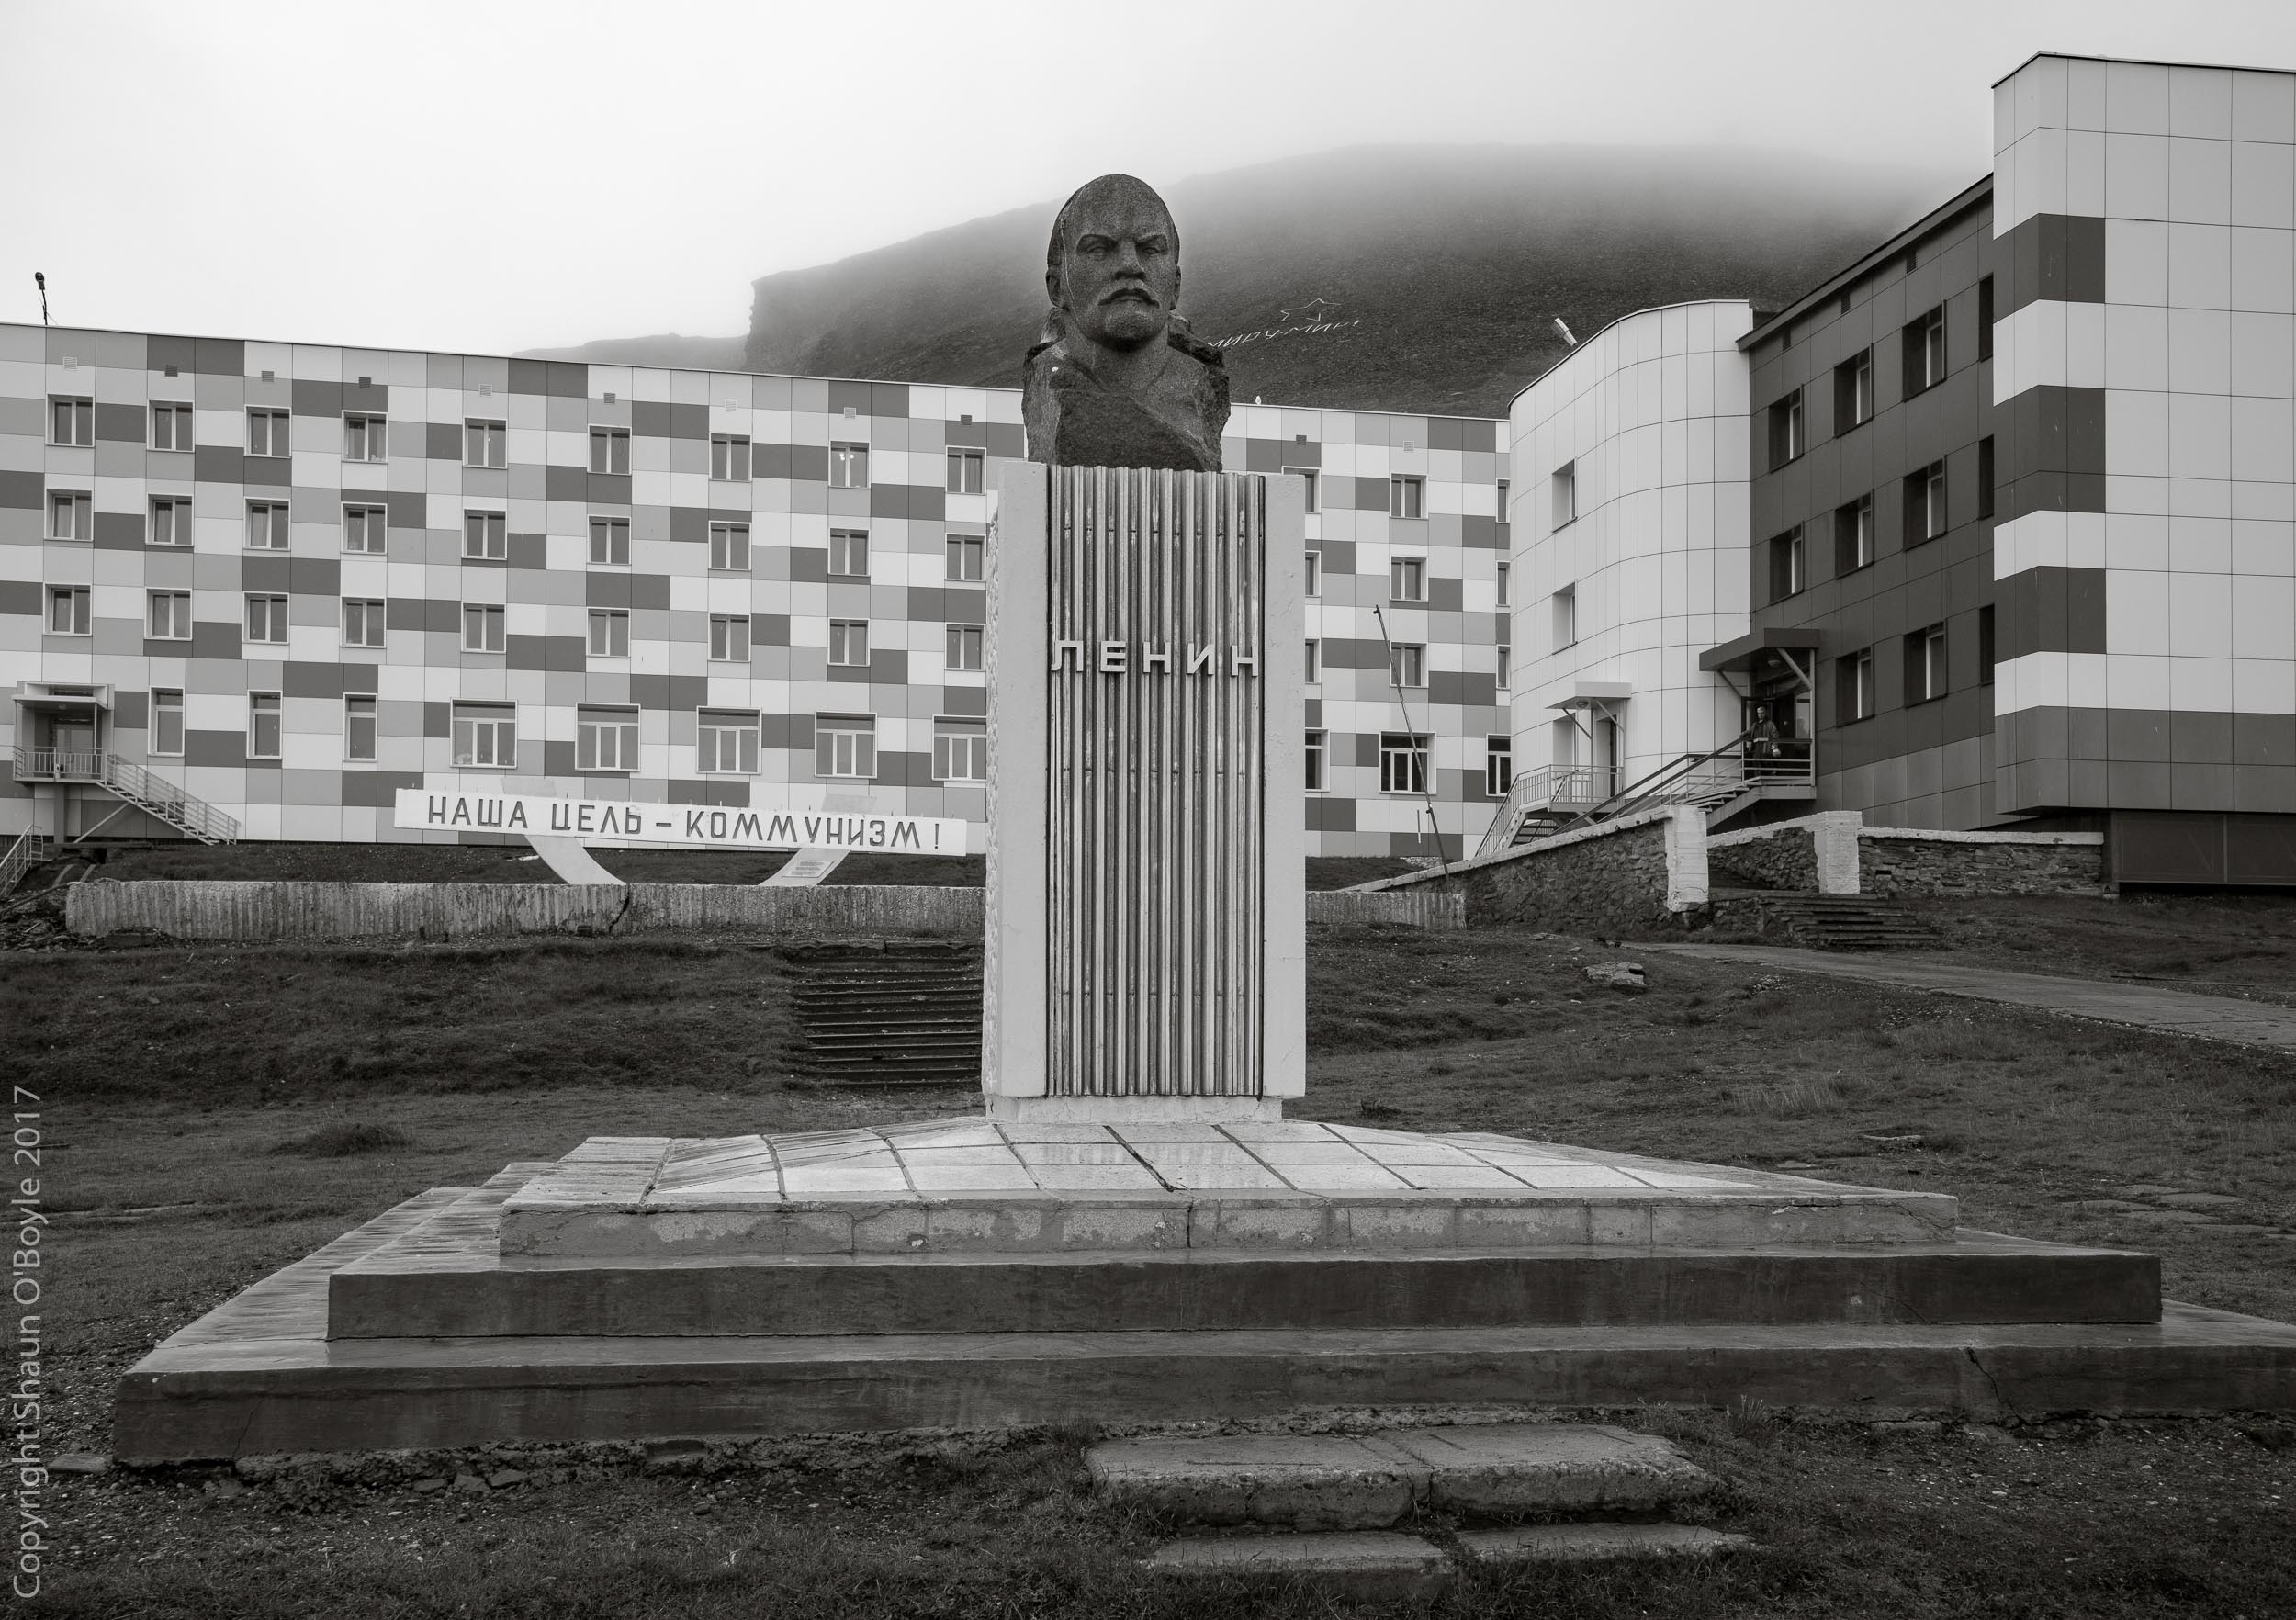 Lenin's bust in the center of Barentsburg,a Russian coal mining settlement on the island of Spitsbergen in the Svalbard archipelago. I made two visits to Barentsburg in July 2017 to photograph the settlement and the surrounding landscapes.